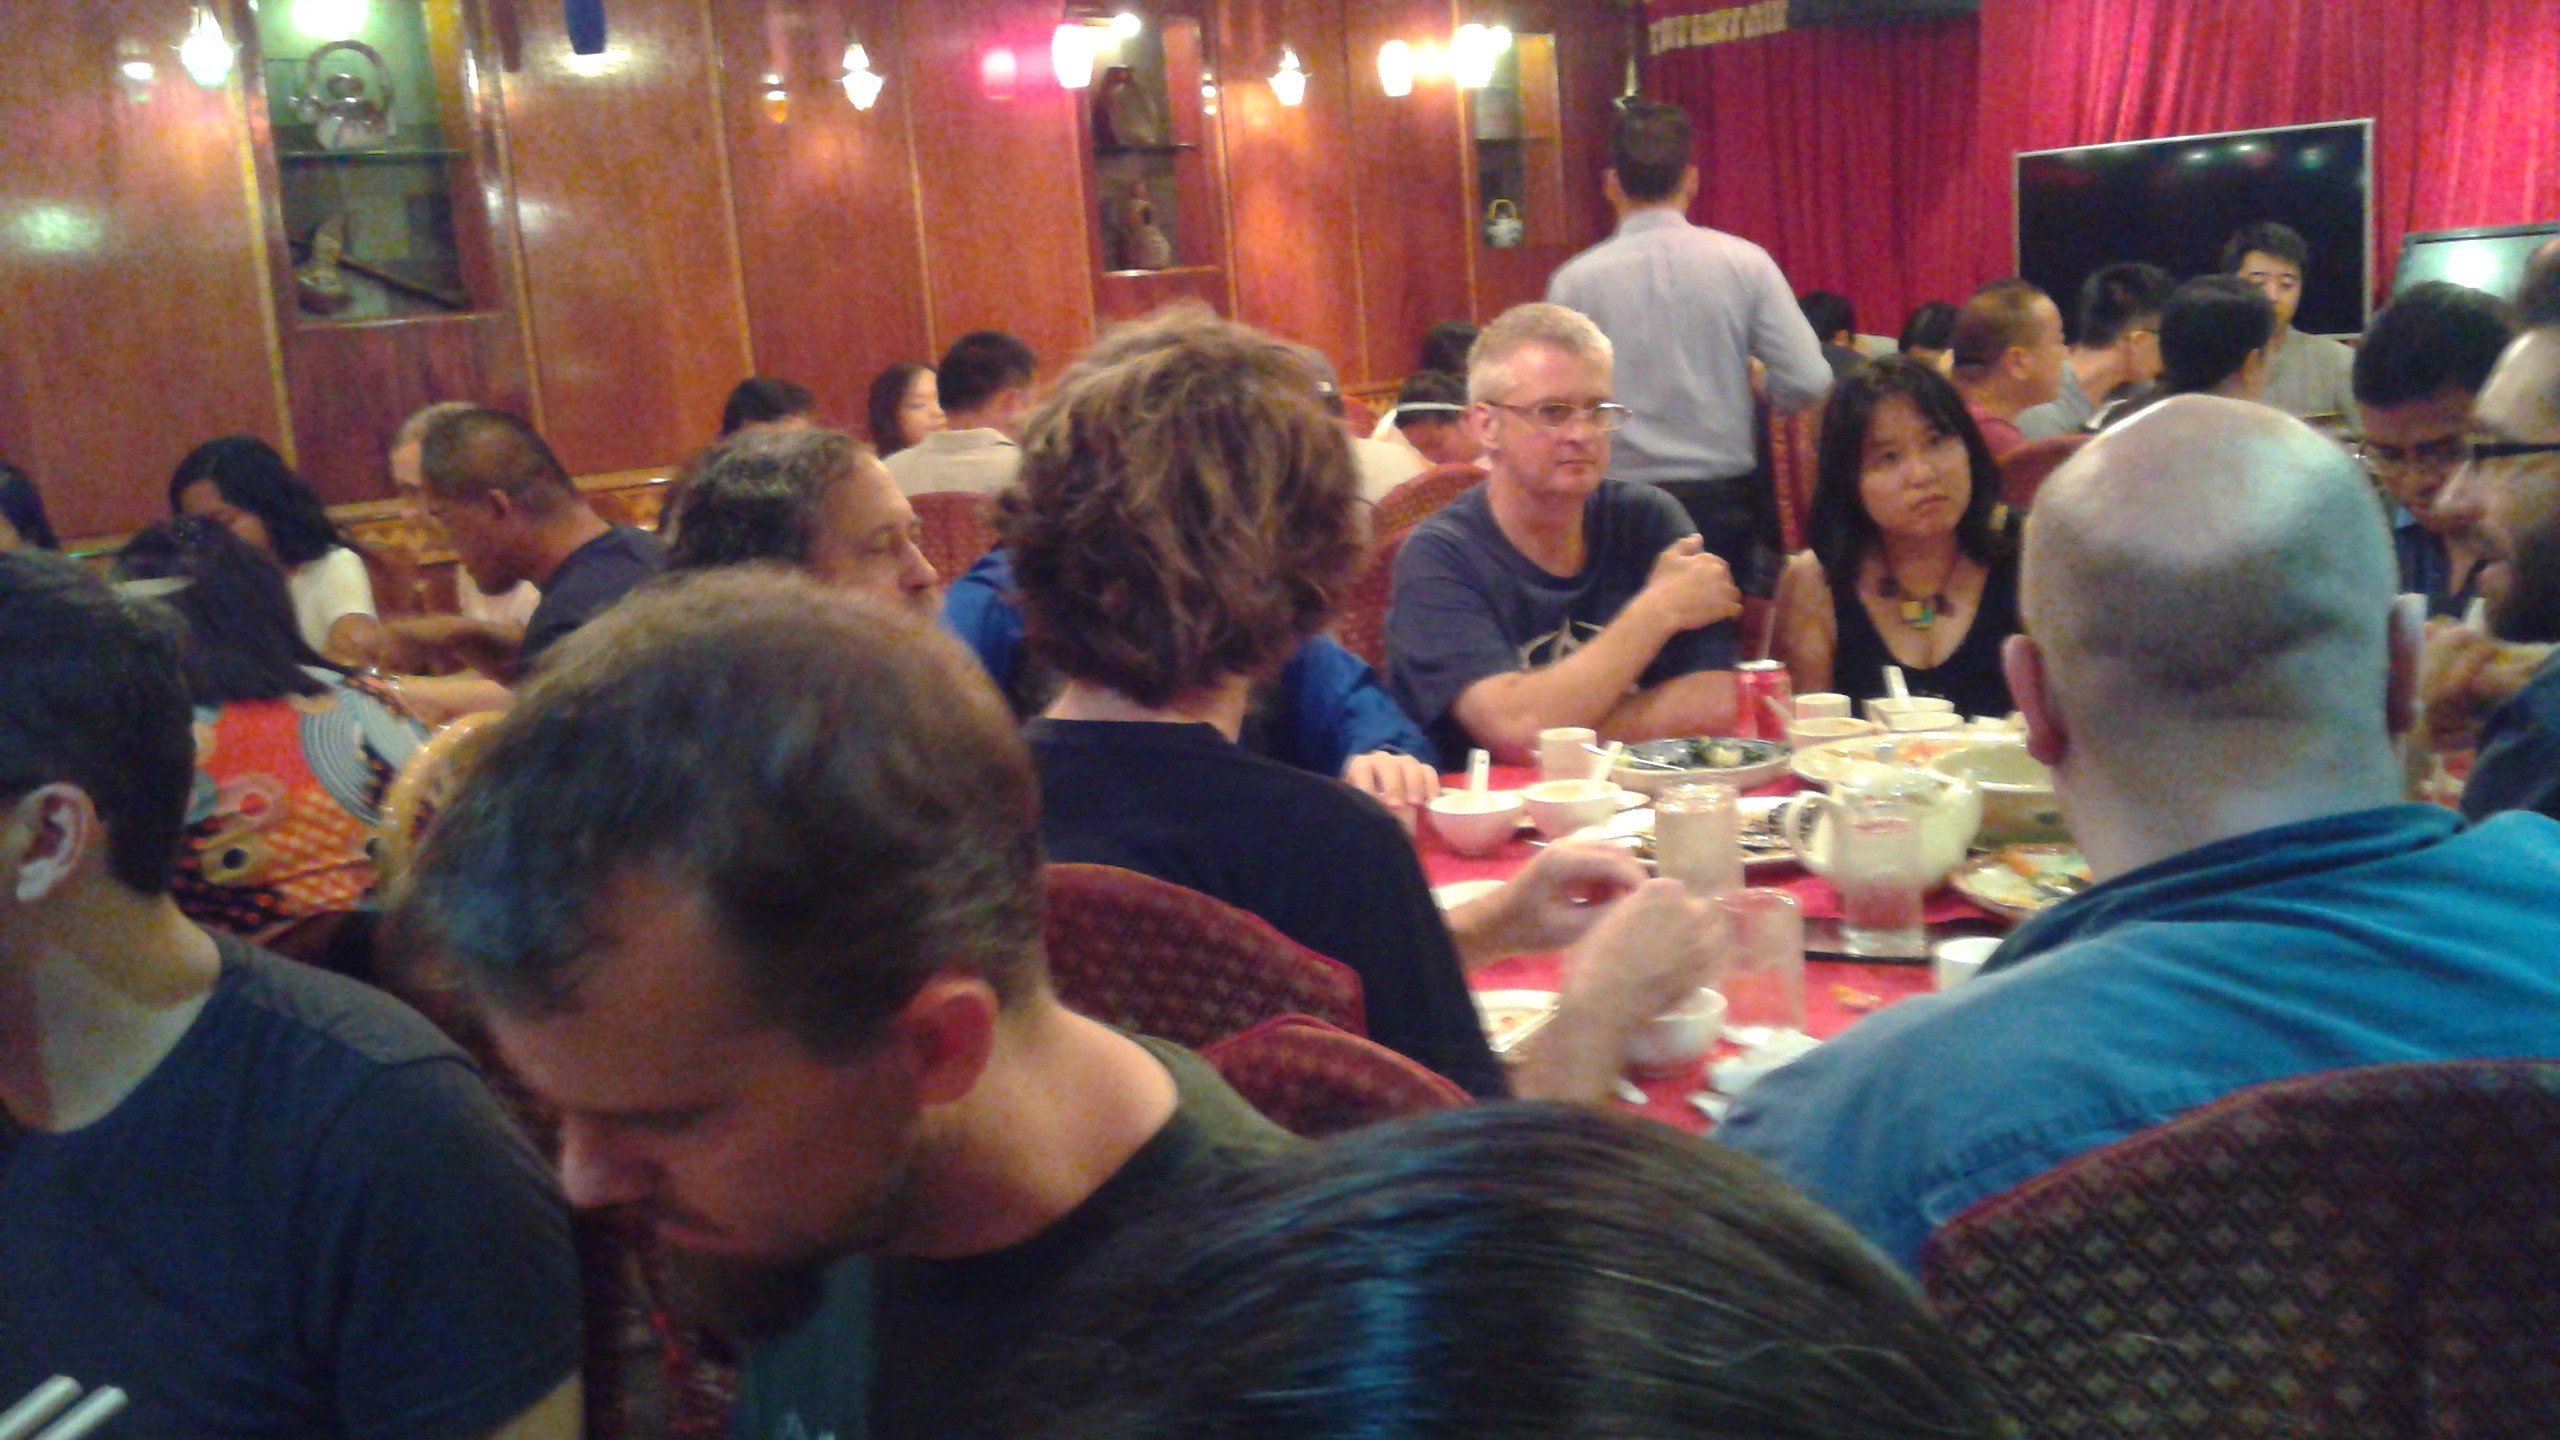 Richard Stallman and others discuss free software over lunch.